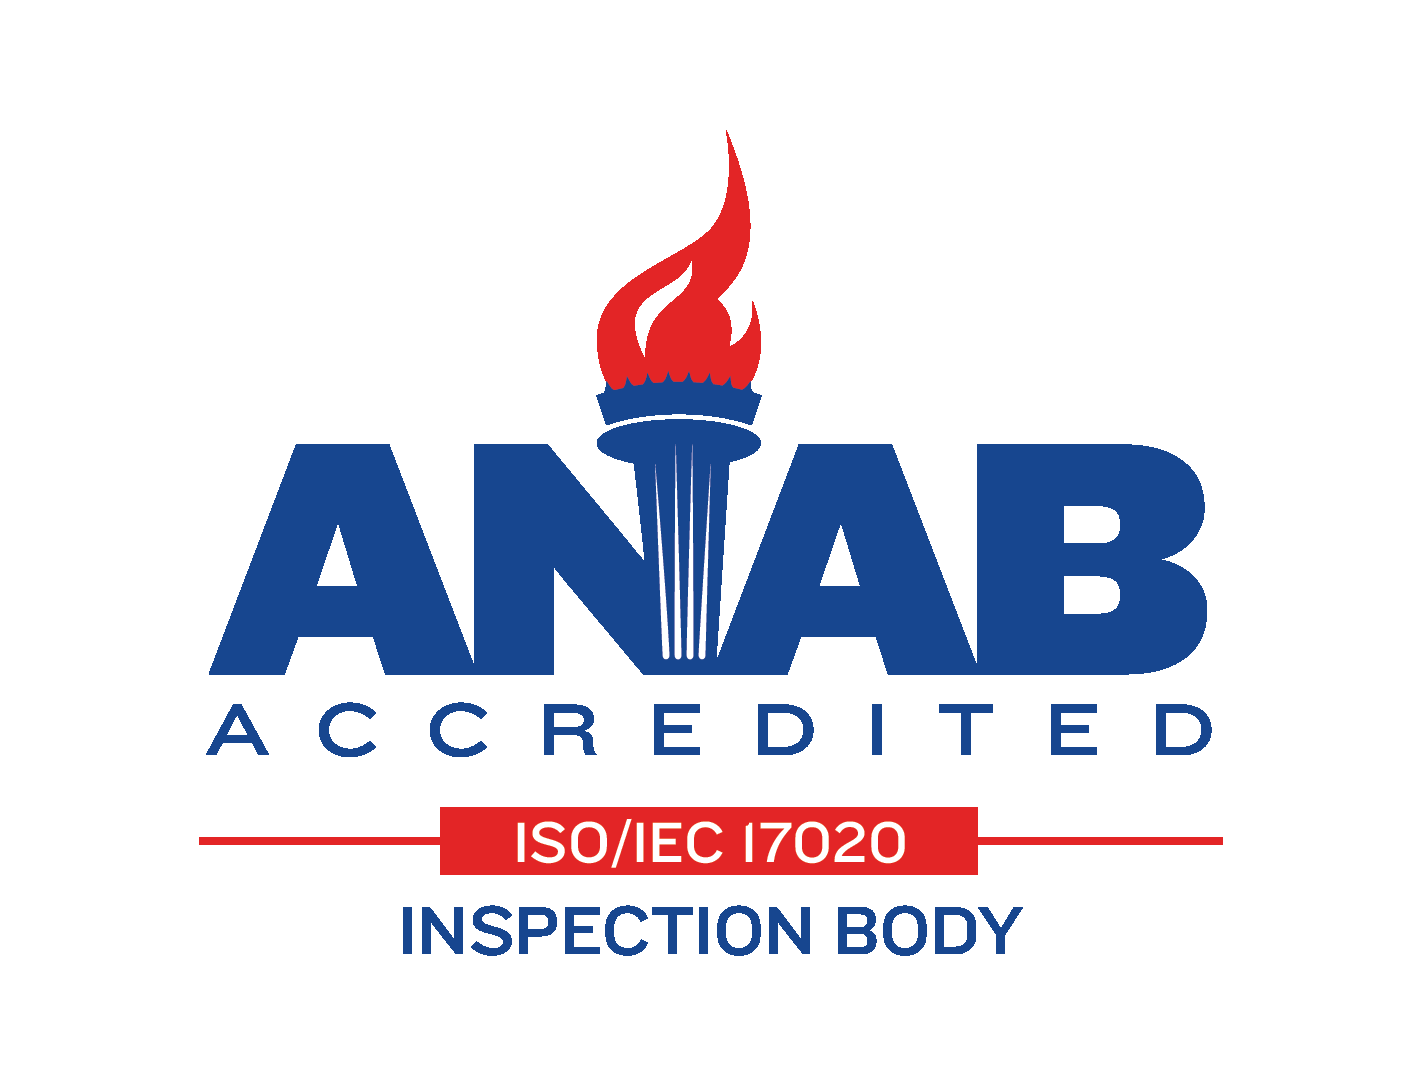 TÜV NORD INCOK Receives ISO/IEC 17020:2012 Accreditation - News